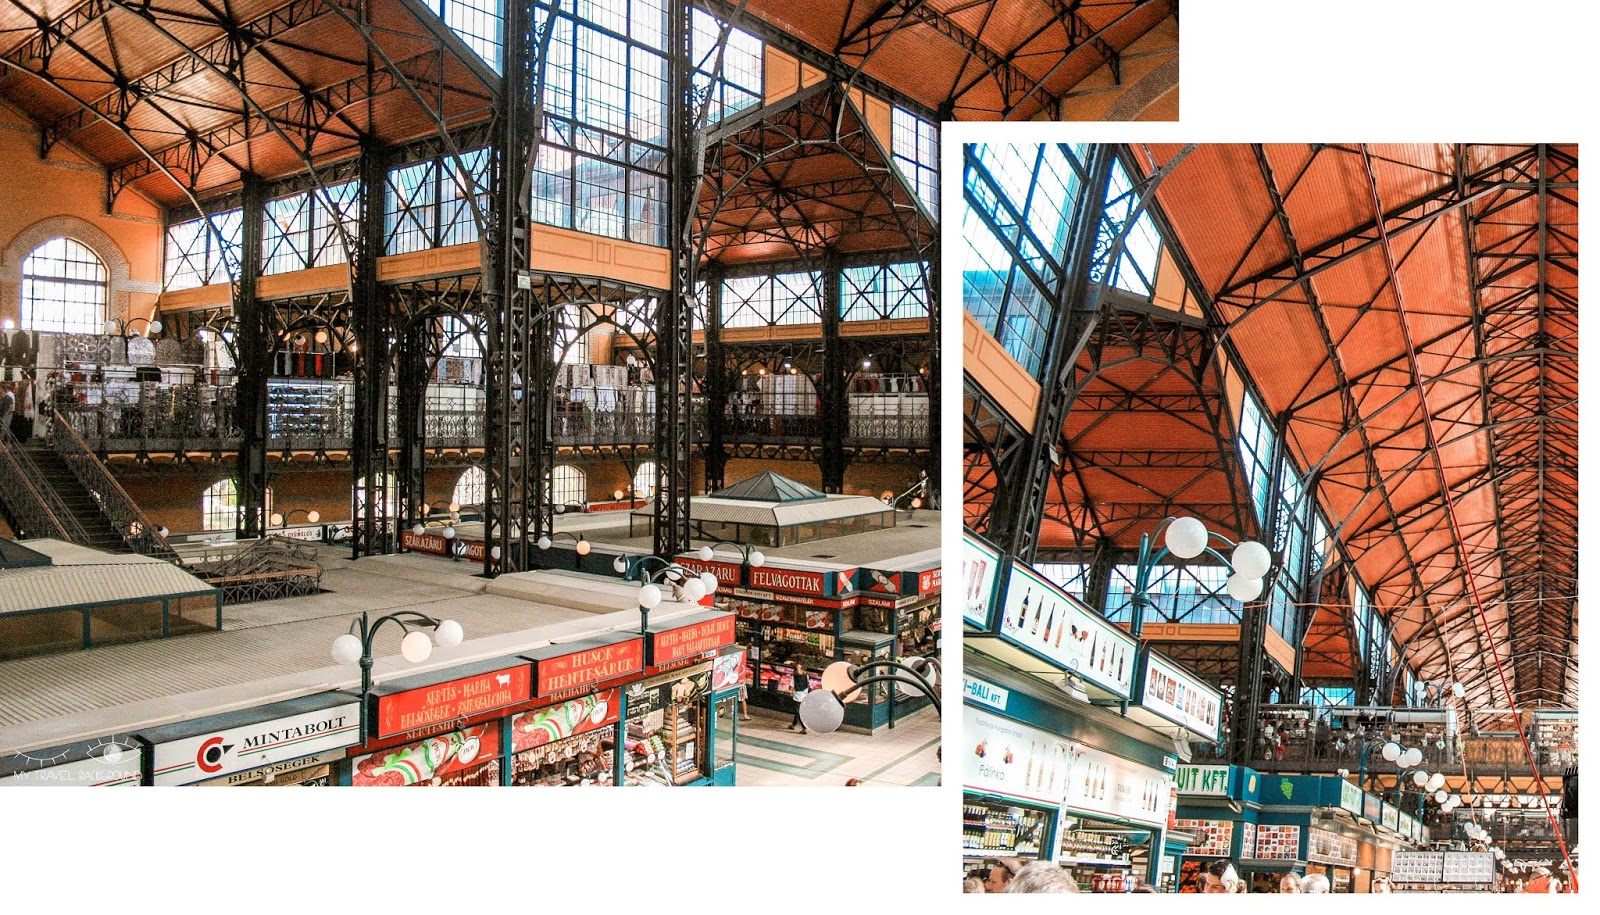 My Travel Background : 1 week-end à Budapest en Hongrie - Le marché central